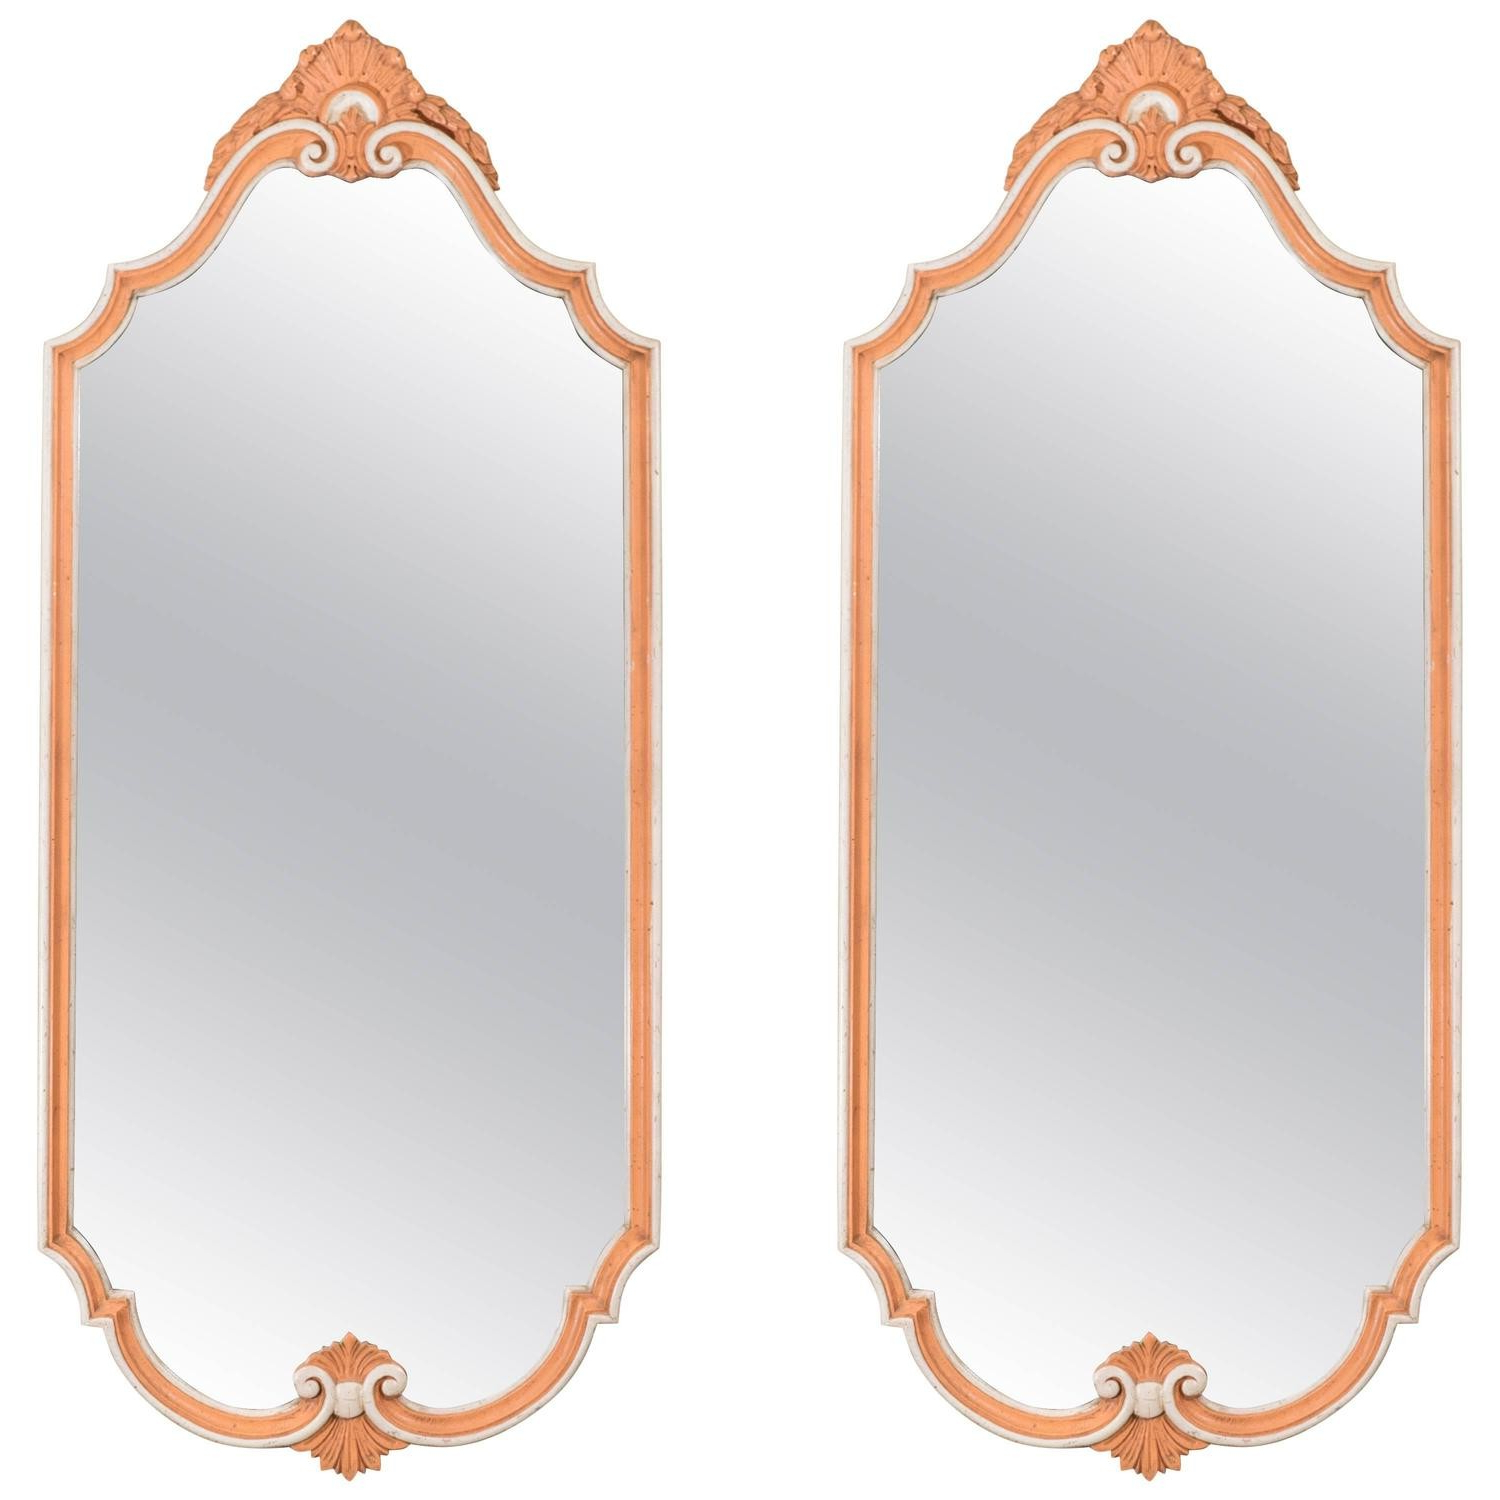 2020 Orange Wall Mirrors Inside Pair Of Orange Hollywood Regency Wall Mirrorsjohn Widdicomb (View 11 of 20)